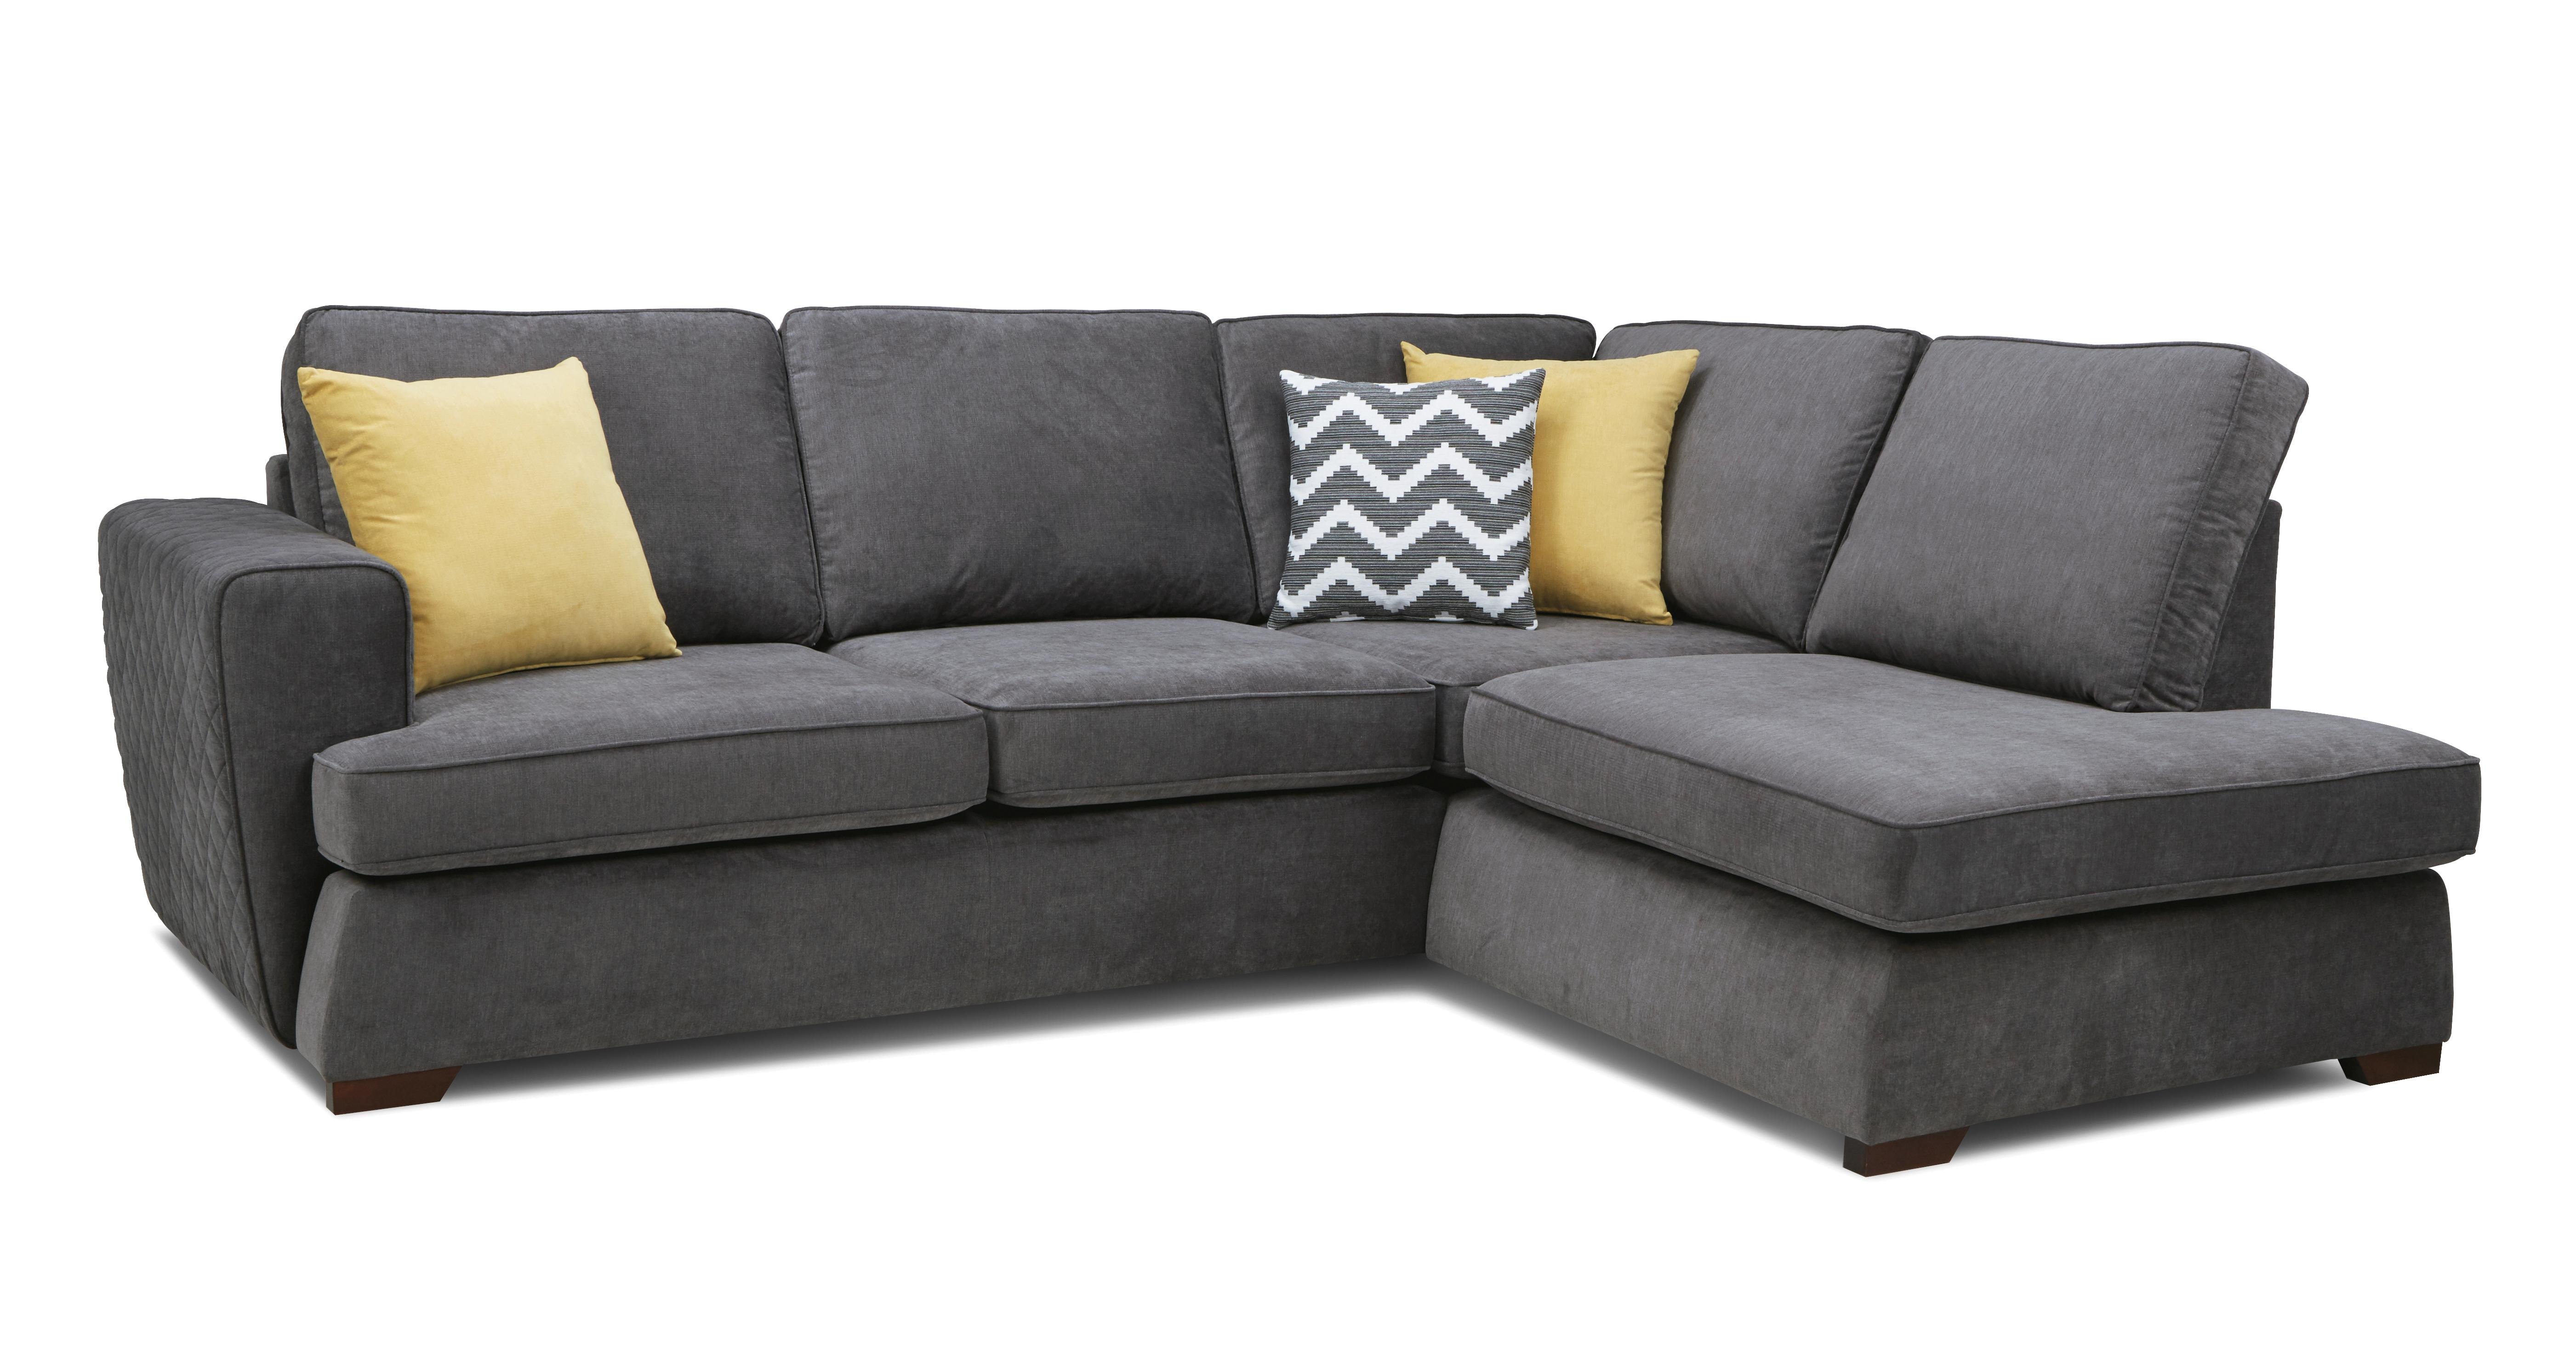 Prime Tryst Left Hand Facing Arm Open End Corner Sofa Home Interior And Landscaping Spoatsignezvosmurscom